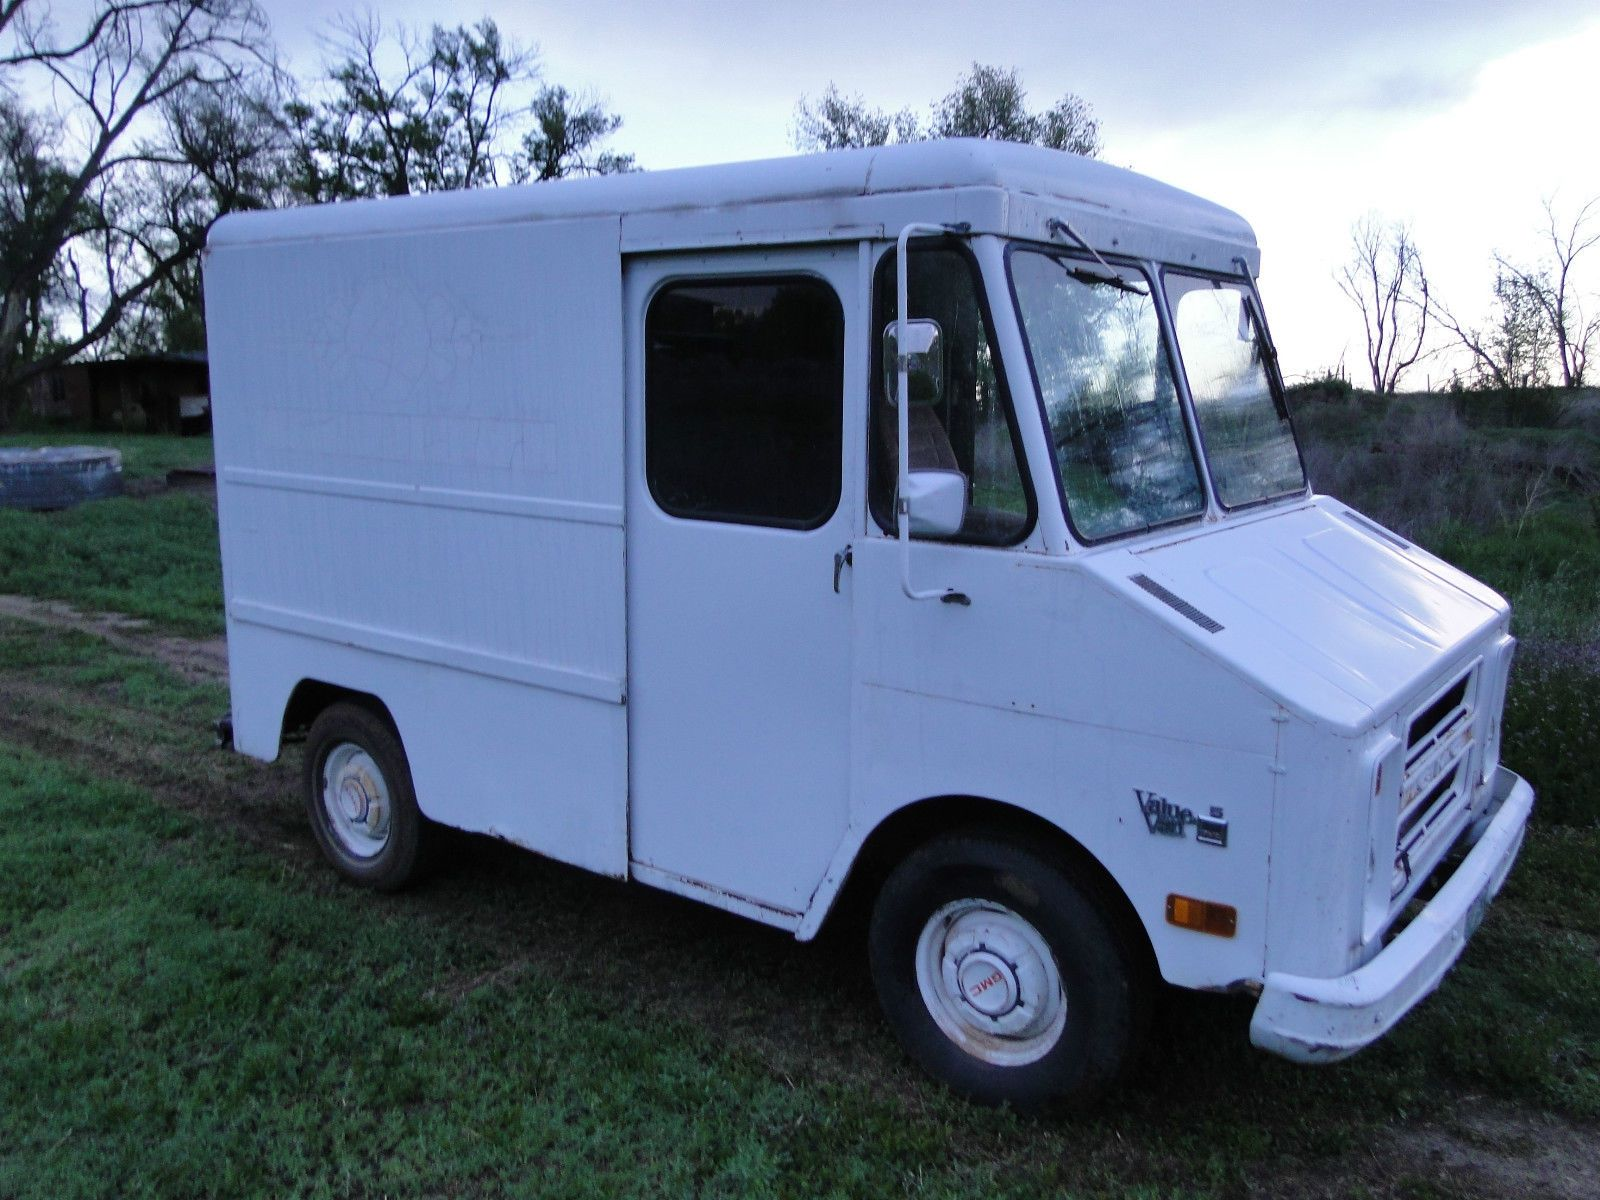 1972 chevrolet p30 short step van this was the type of step van that was used in the 1970 s 80 s for home newspaper delivery a al hudak special  [ 1600 x 1200 Pixel ]